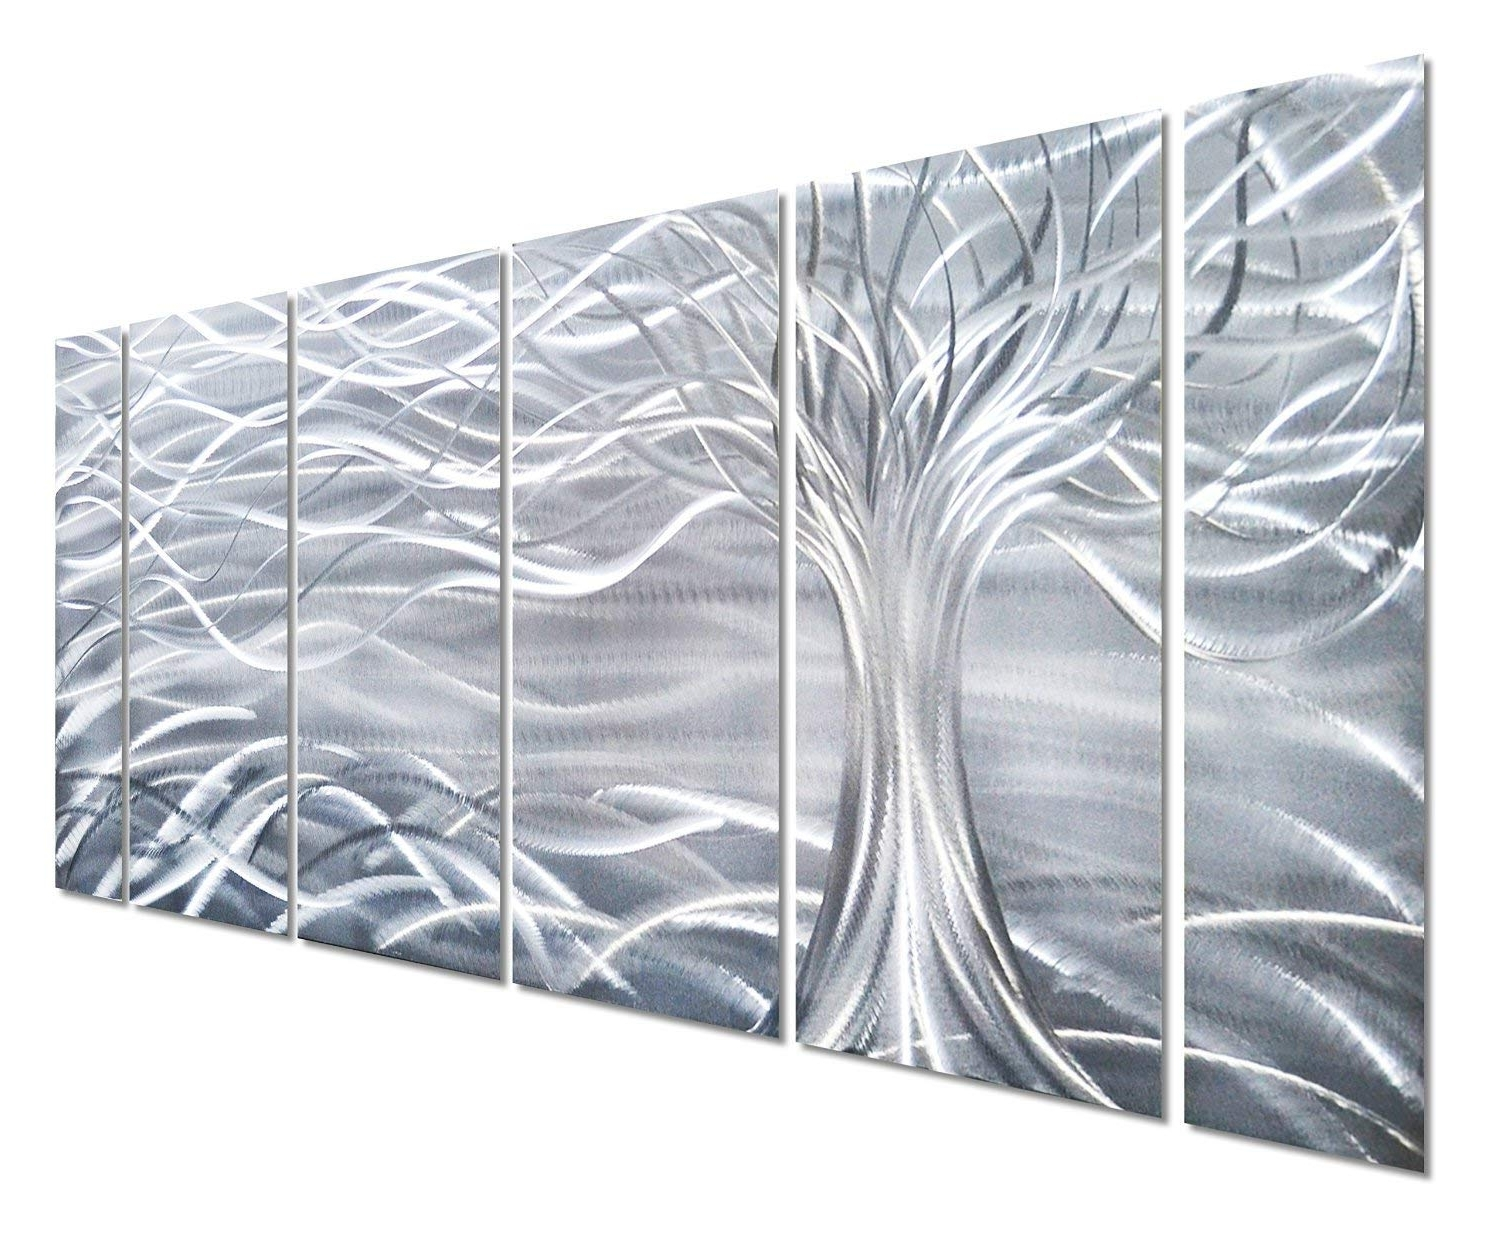 Popular Amazon: Pure Art Willow Tree Of Life Metal Wall Art, Abstract Intended For Metal Wall Art Panels (View 14 of 15)